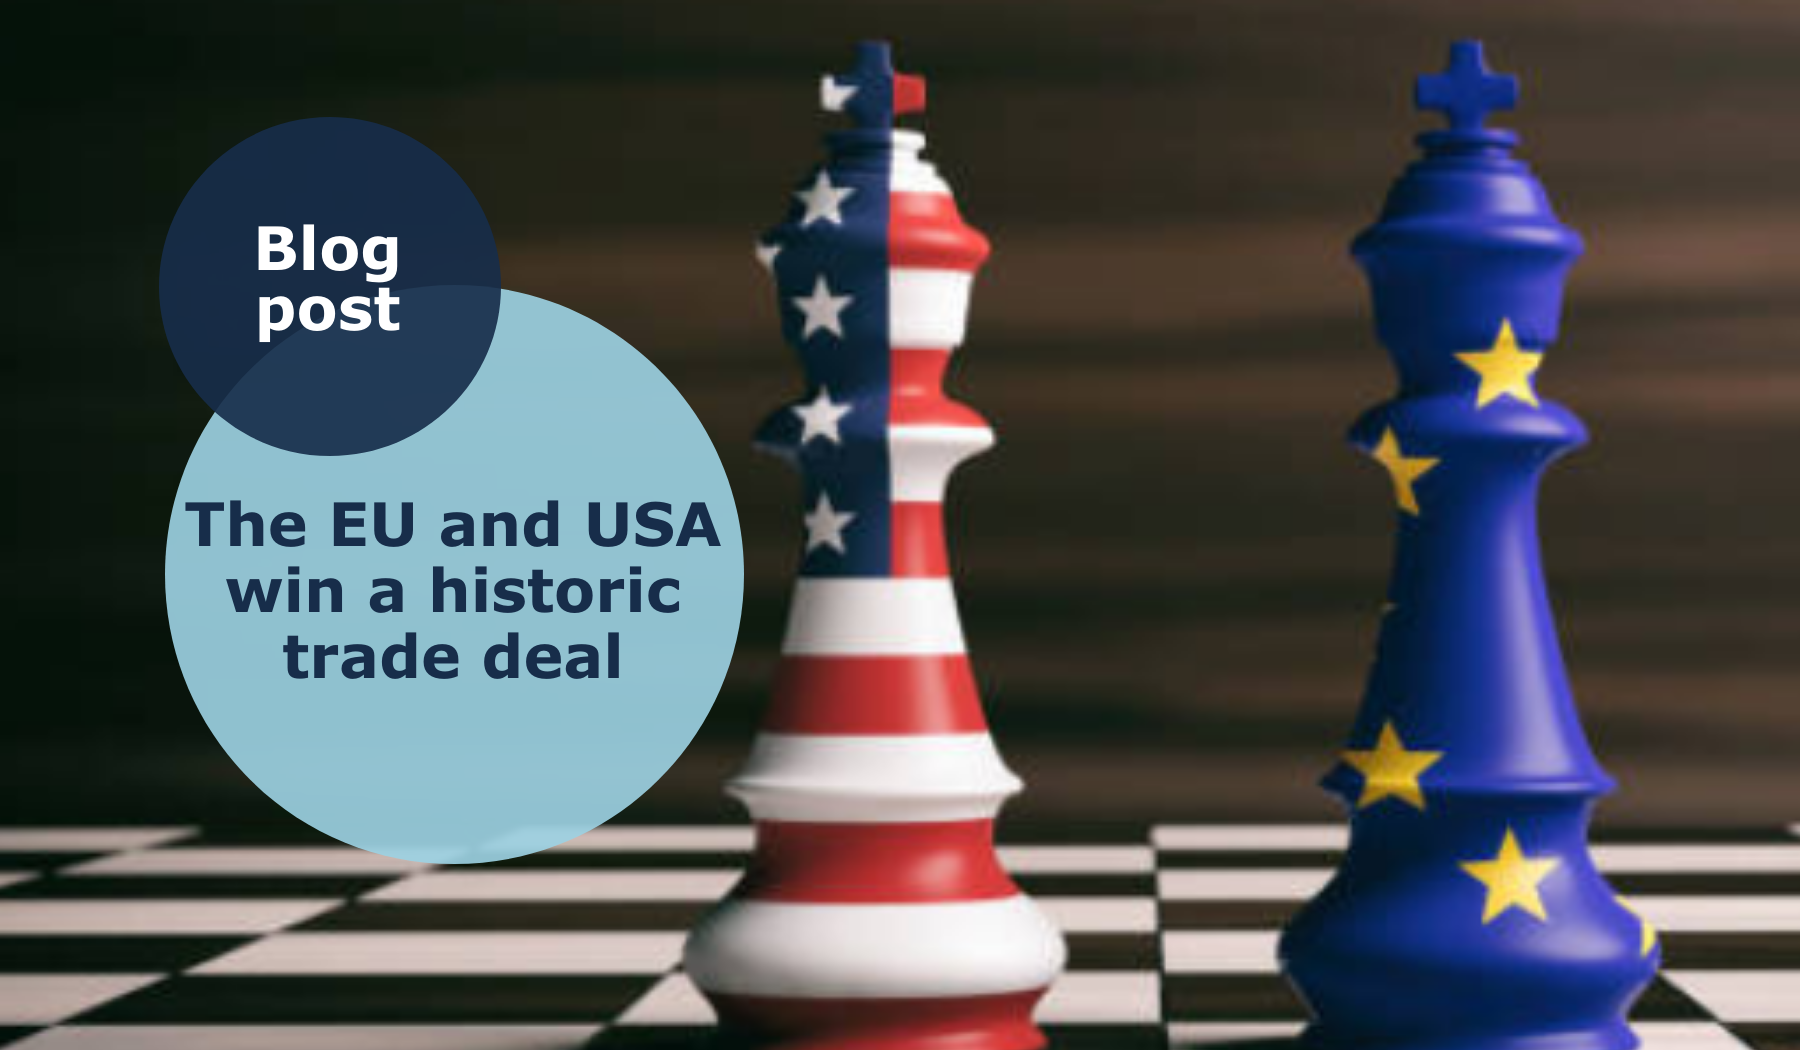 USA & EU new trade deal